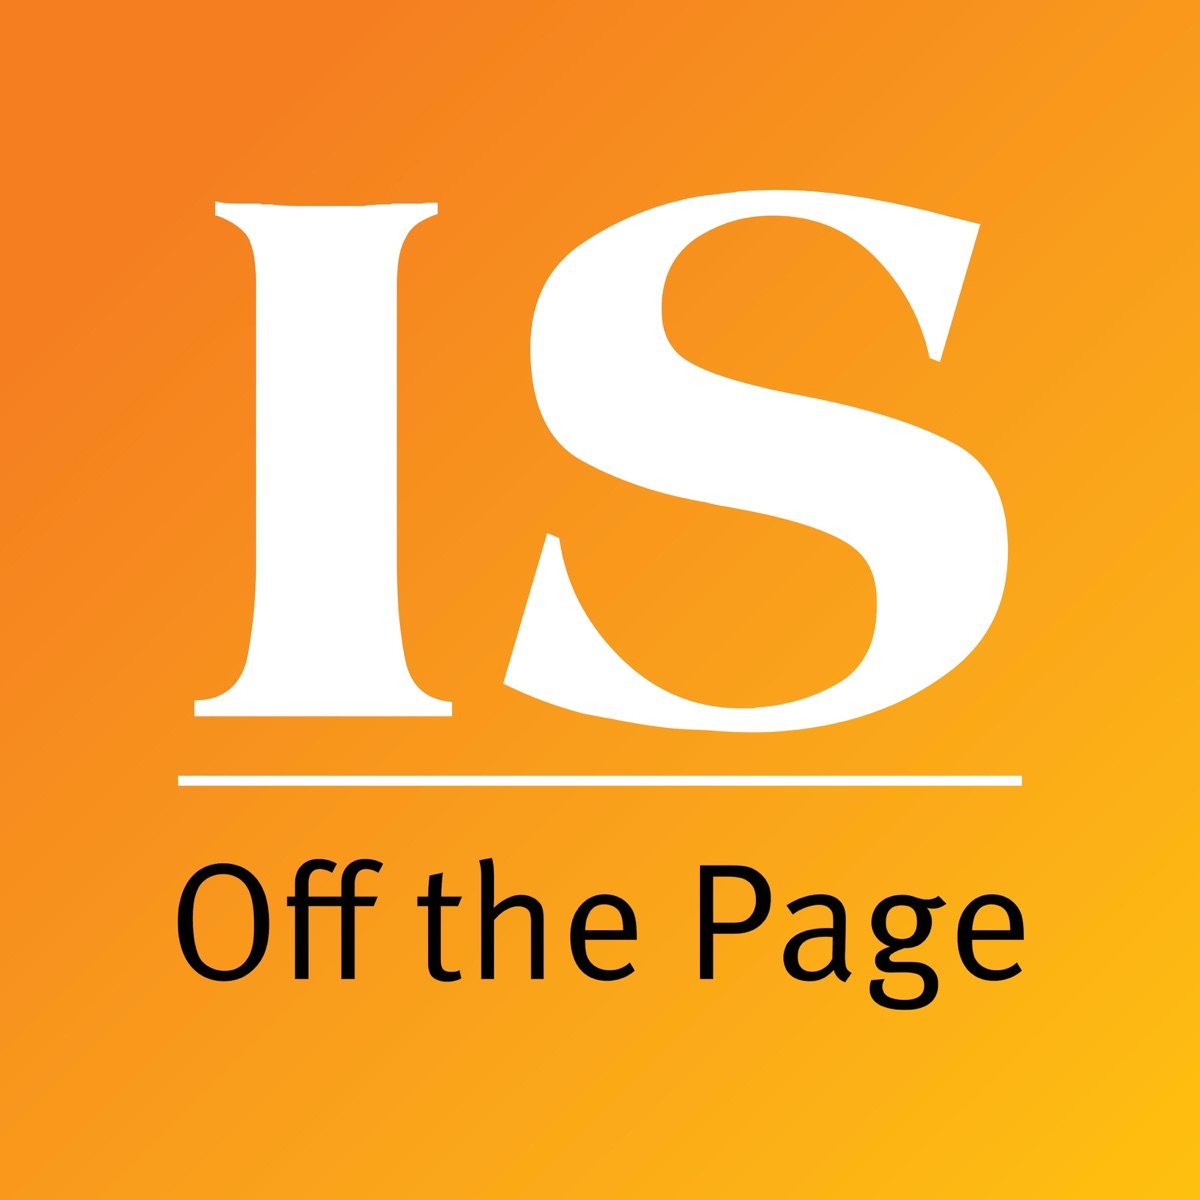 IS: Off the Page